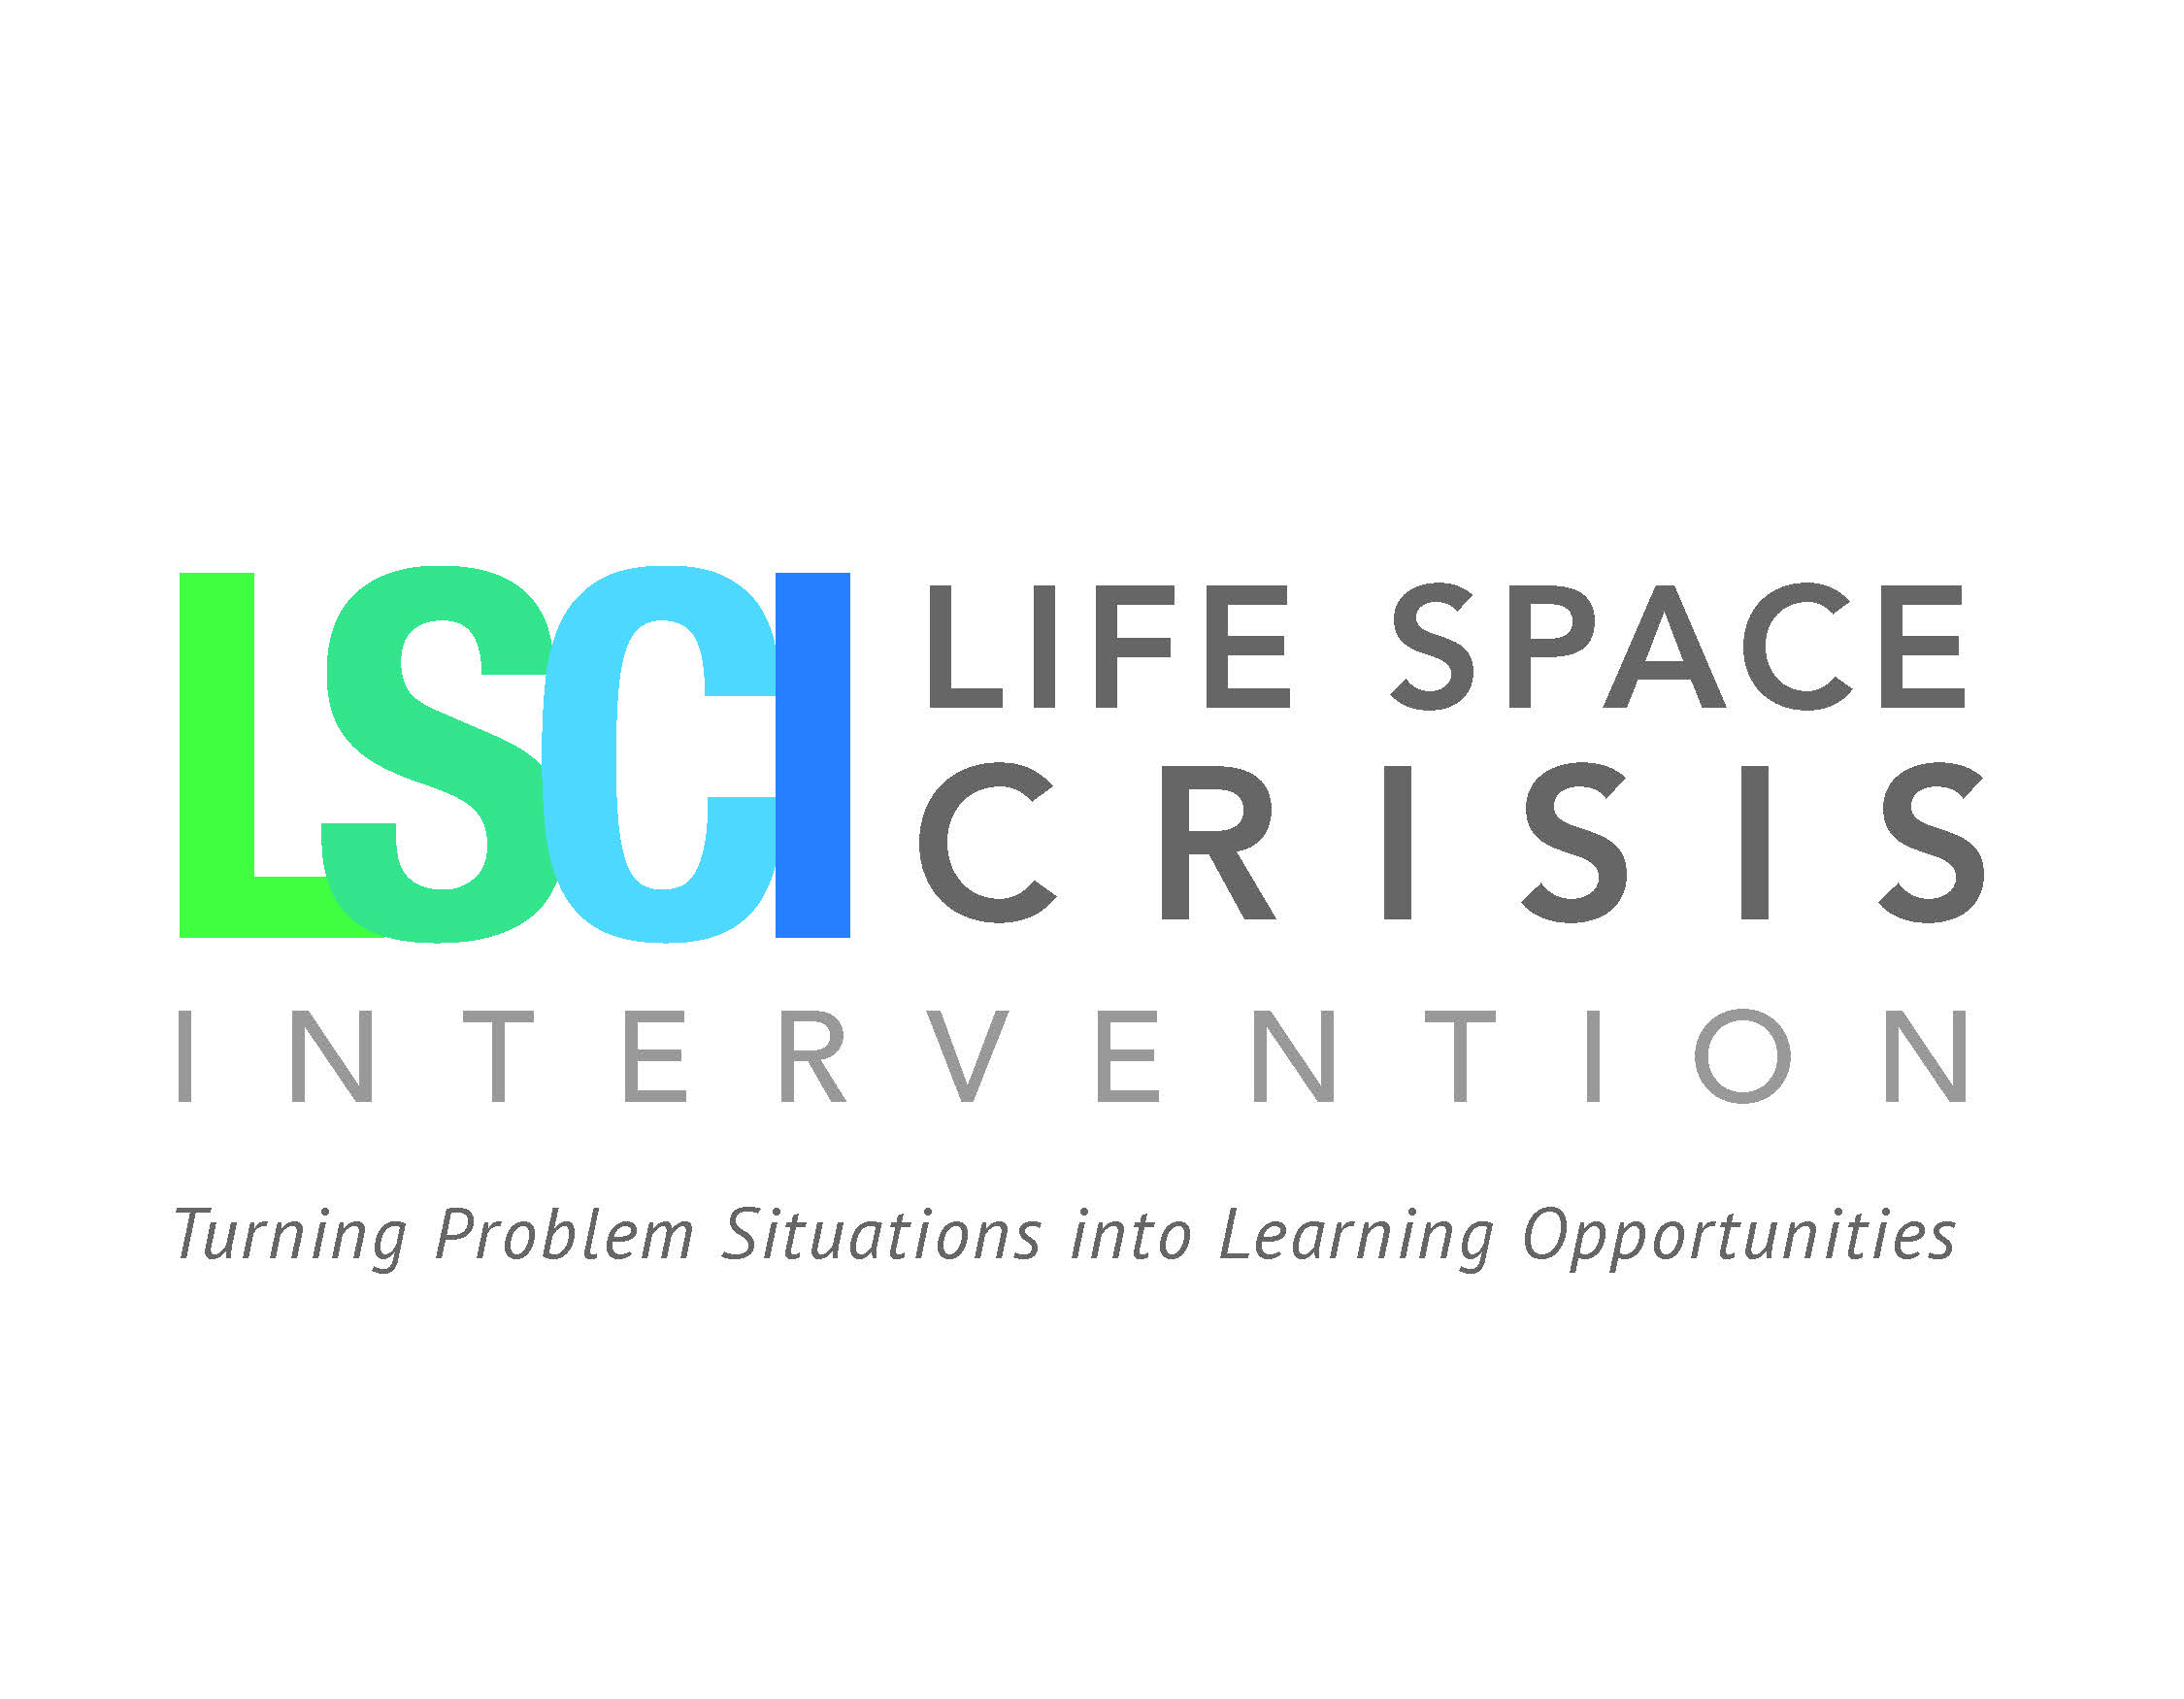 life space and science training program logo - photo #40